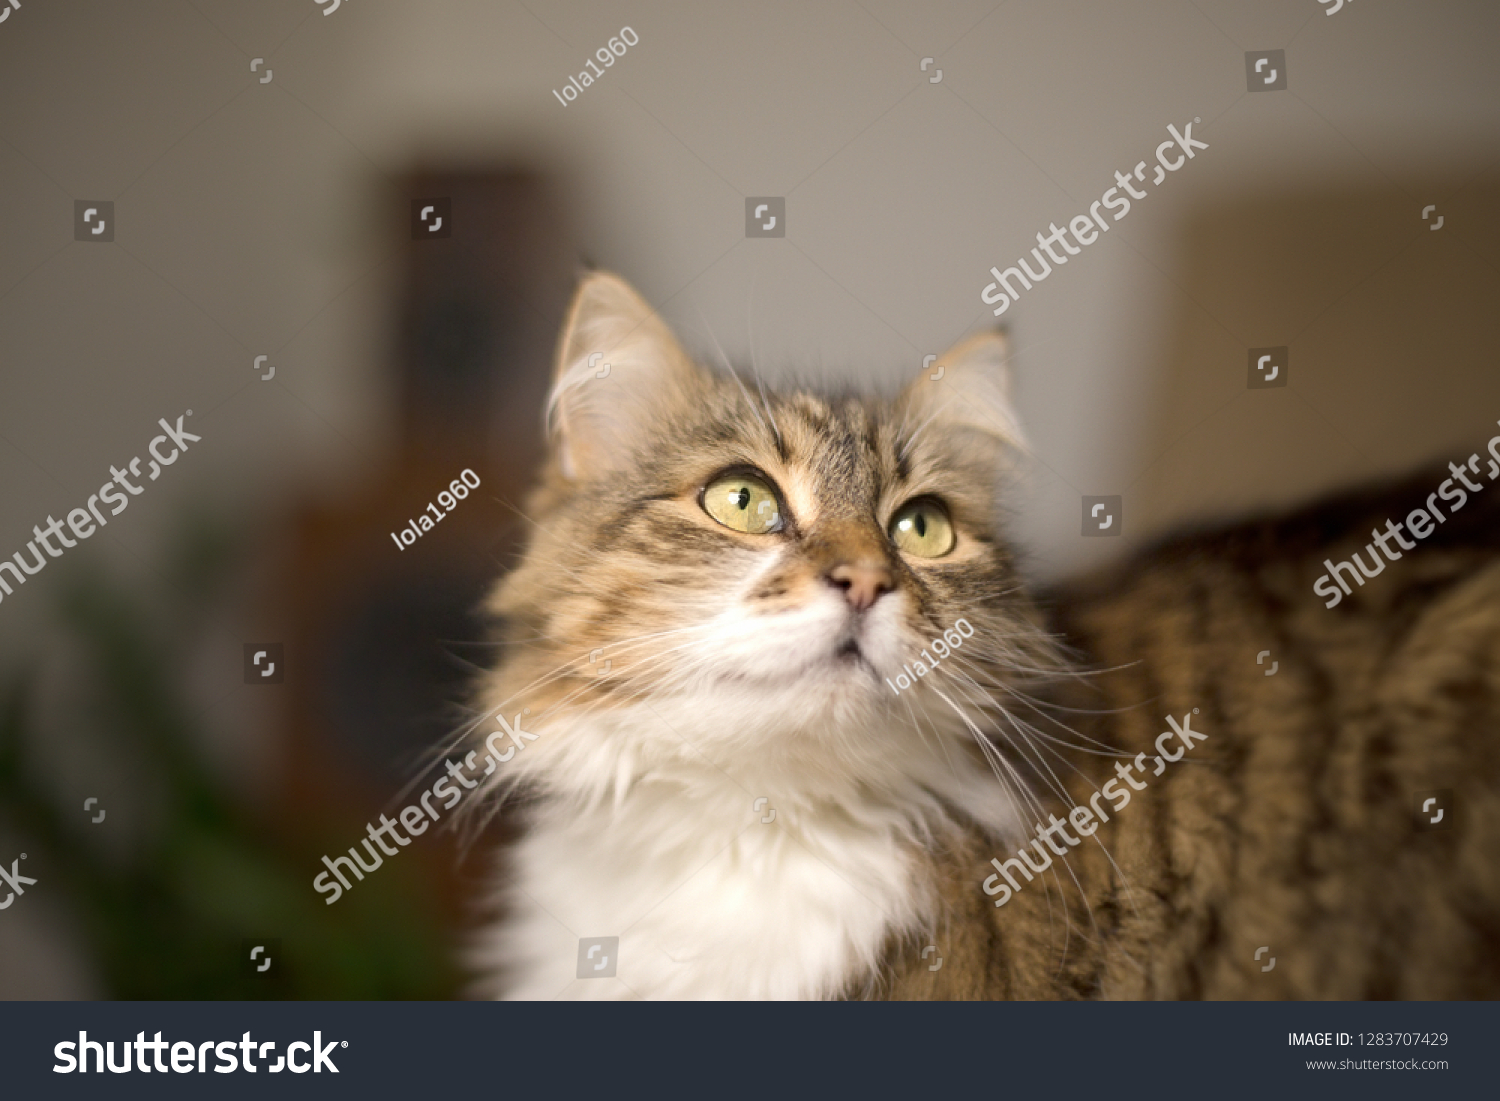 Beautiful long-haired cat looks and poses #1283707429